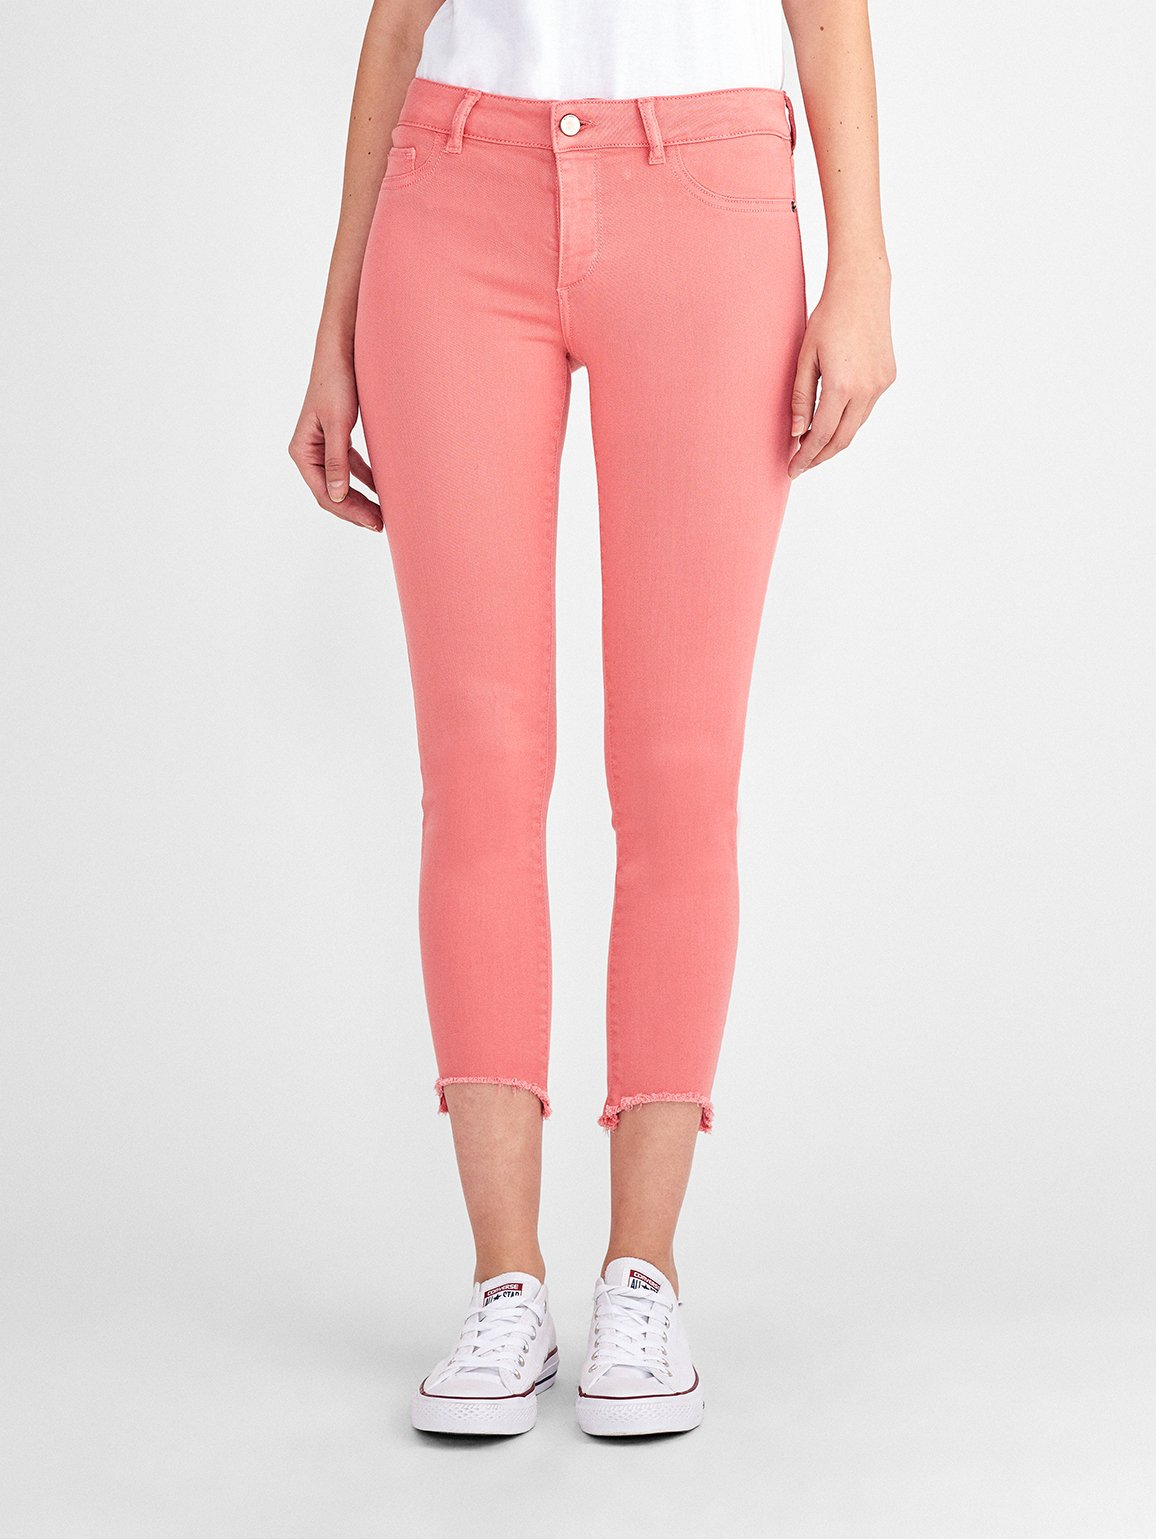 Florence Crop Mid Rise Skinny | Sunset DL 1961 Denim